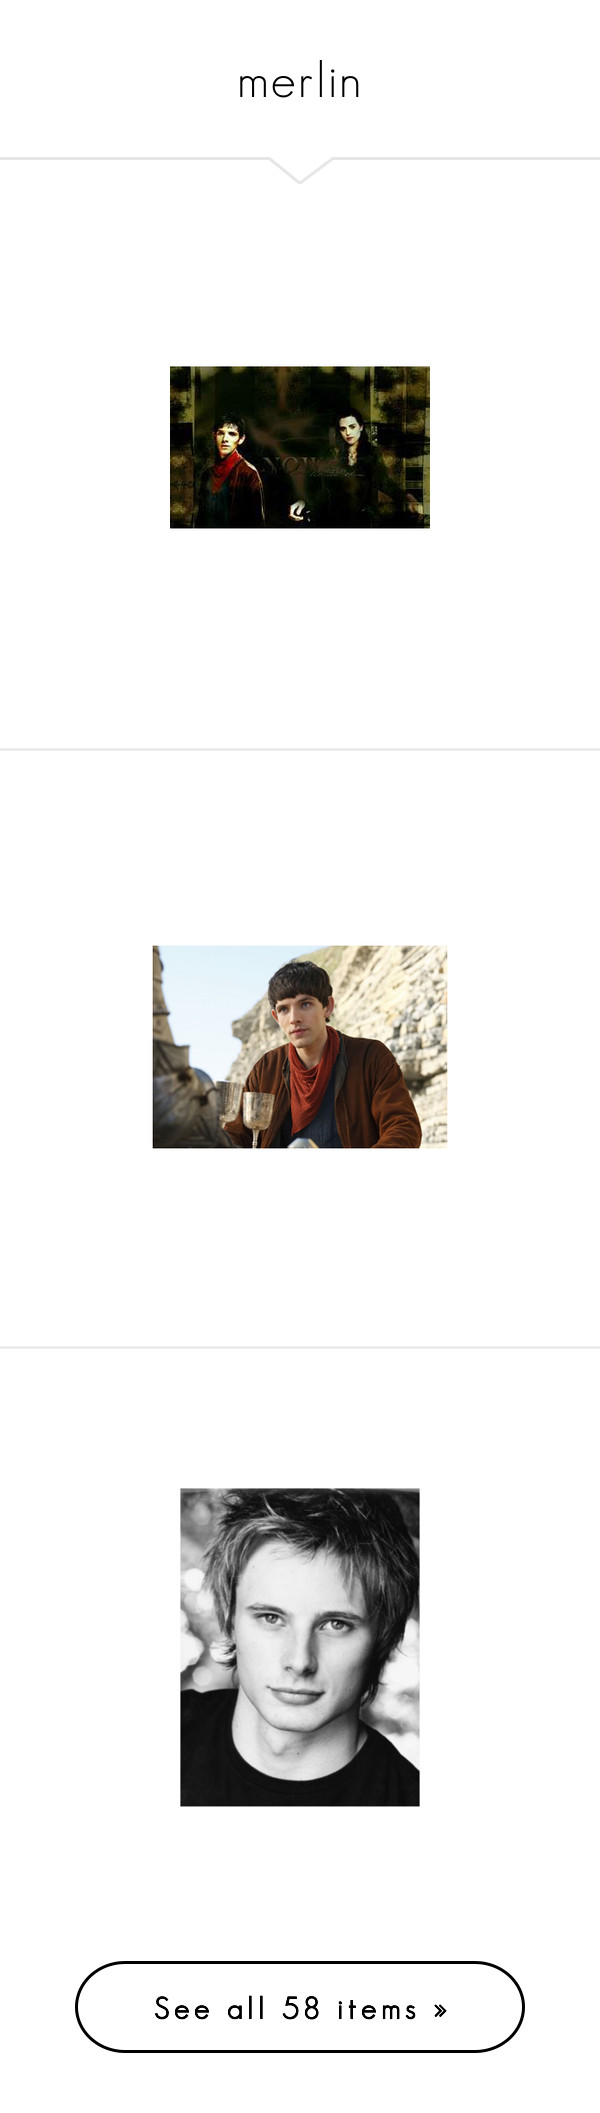 """merlin"" by alwaysdelena ❤ liked on Polyvore featuring merlin, bradley james, arthur pendragon, katie mcgrath, morgana and pictures"